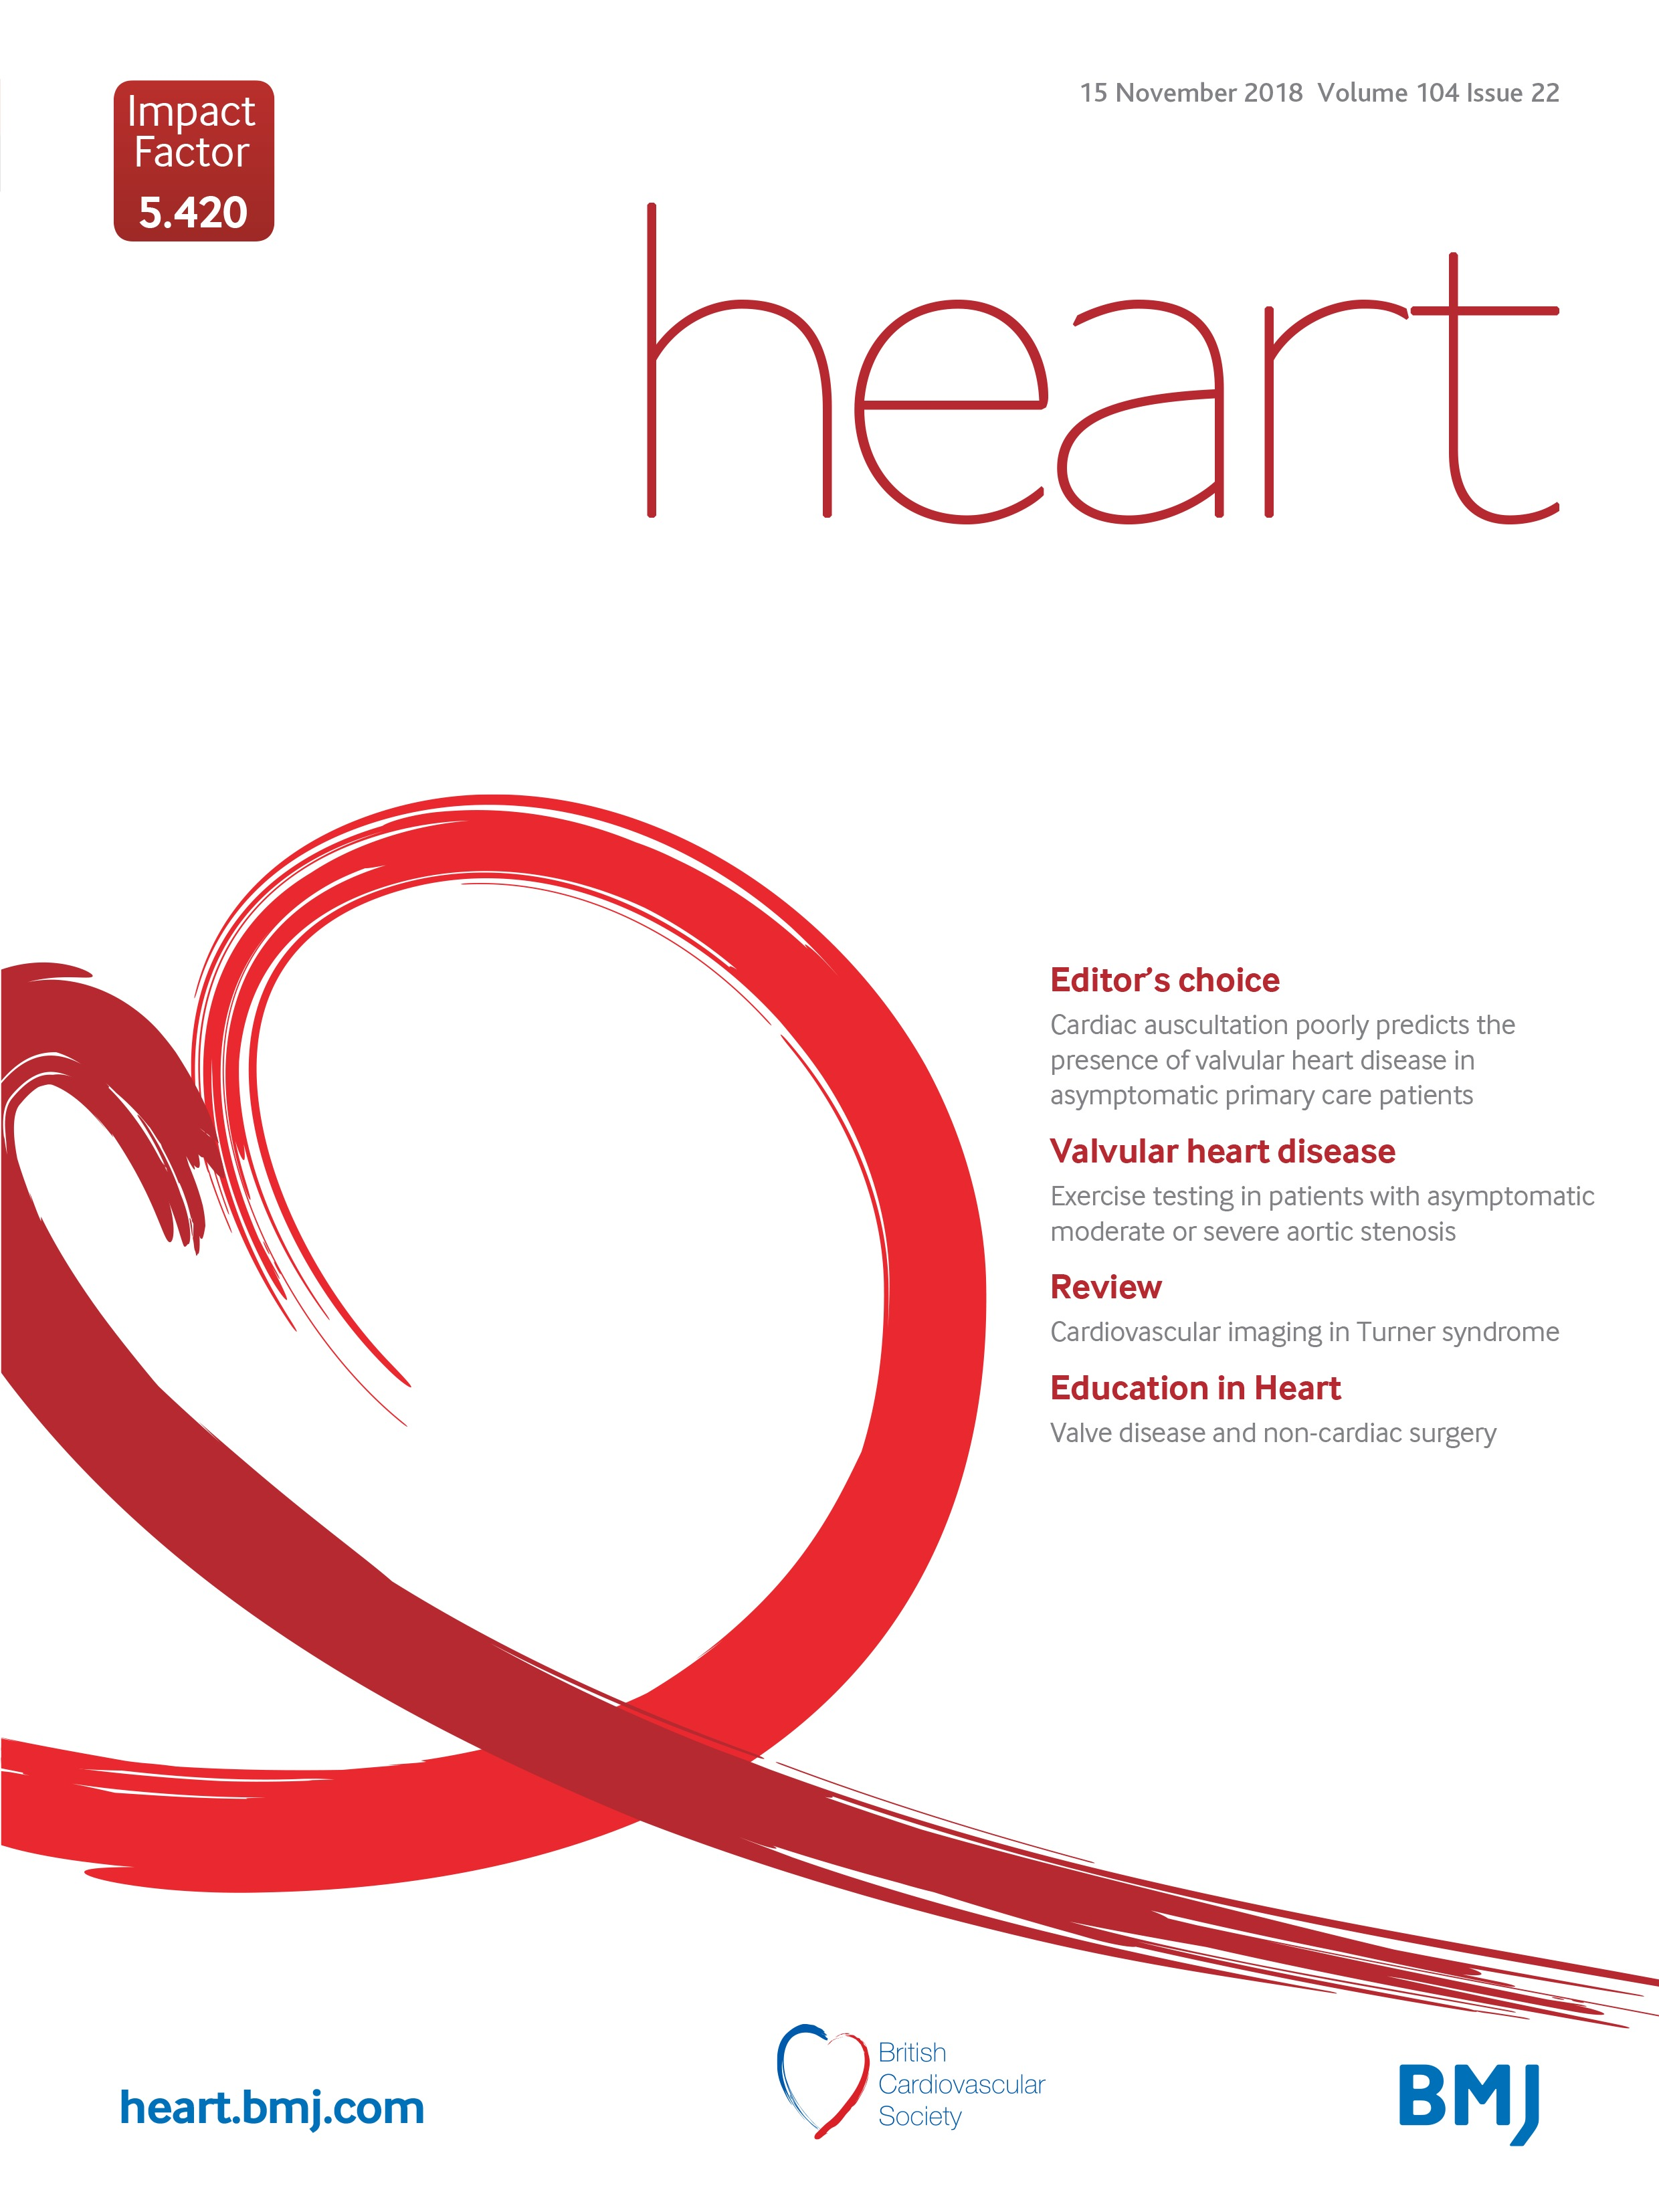 Cardiac auscultation poorly predicts the presence of valvular heart